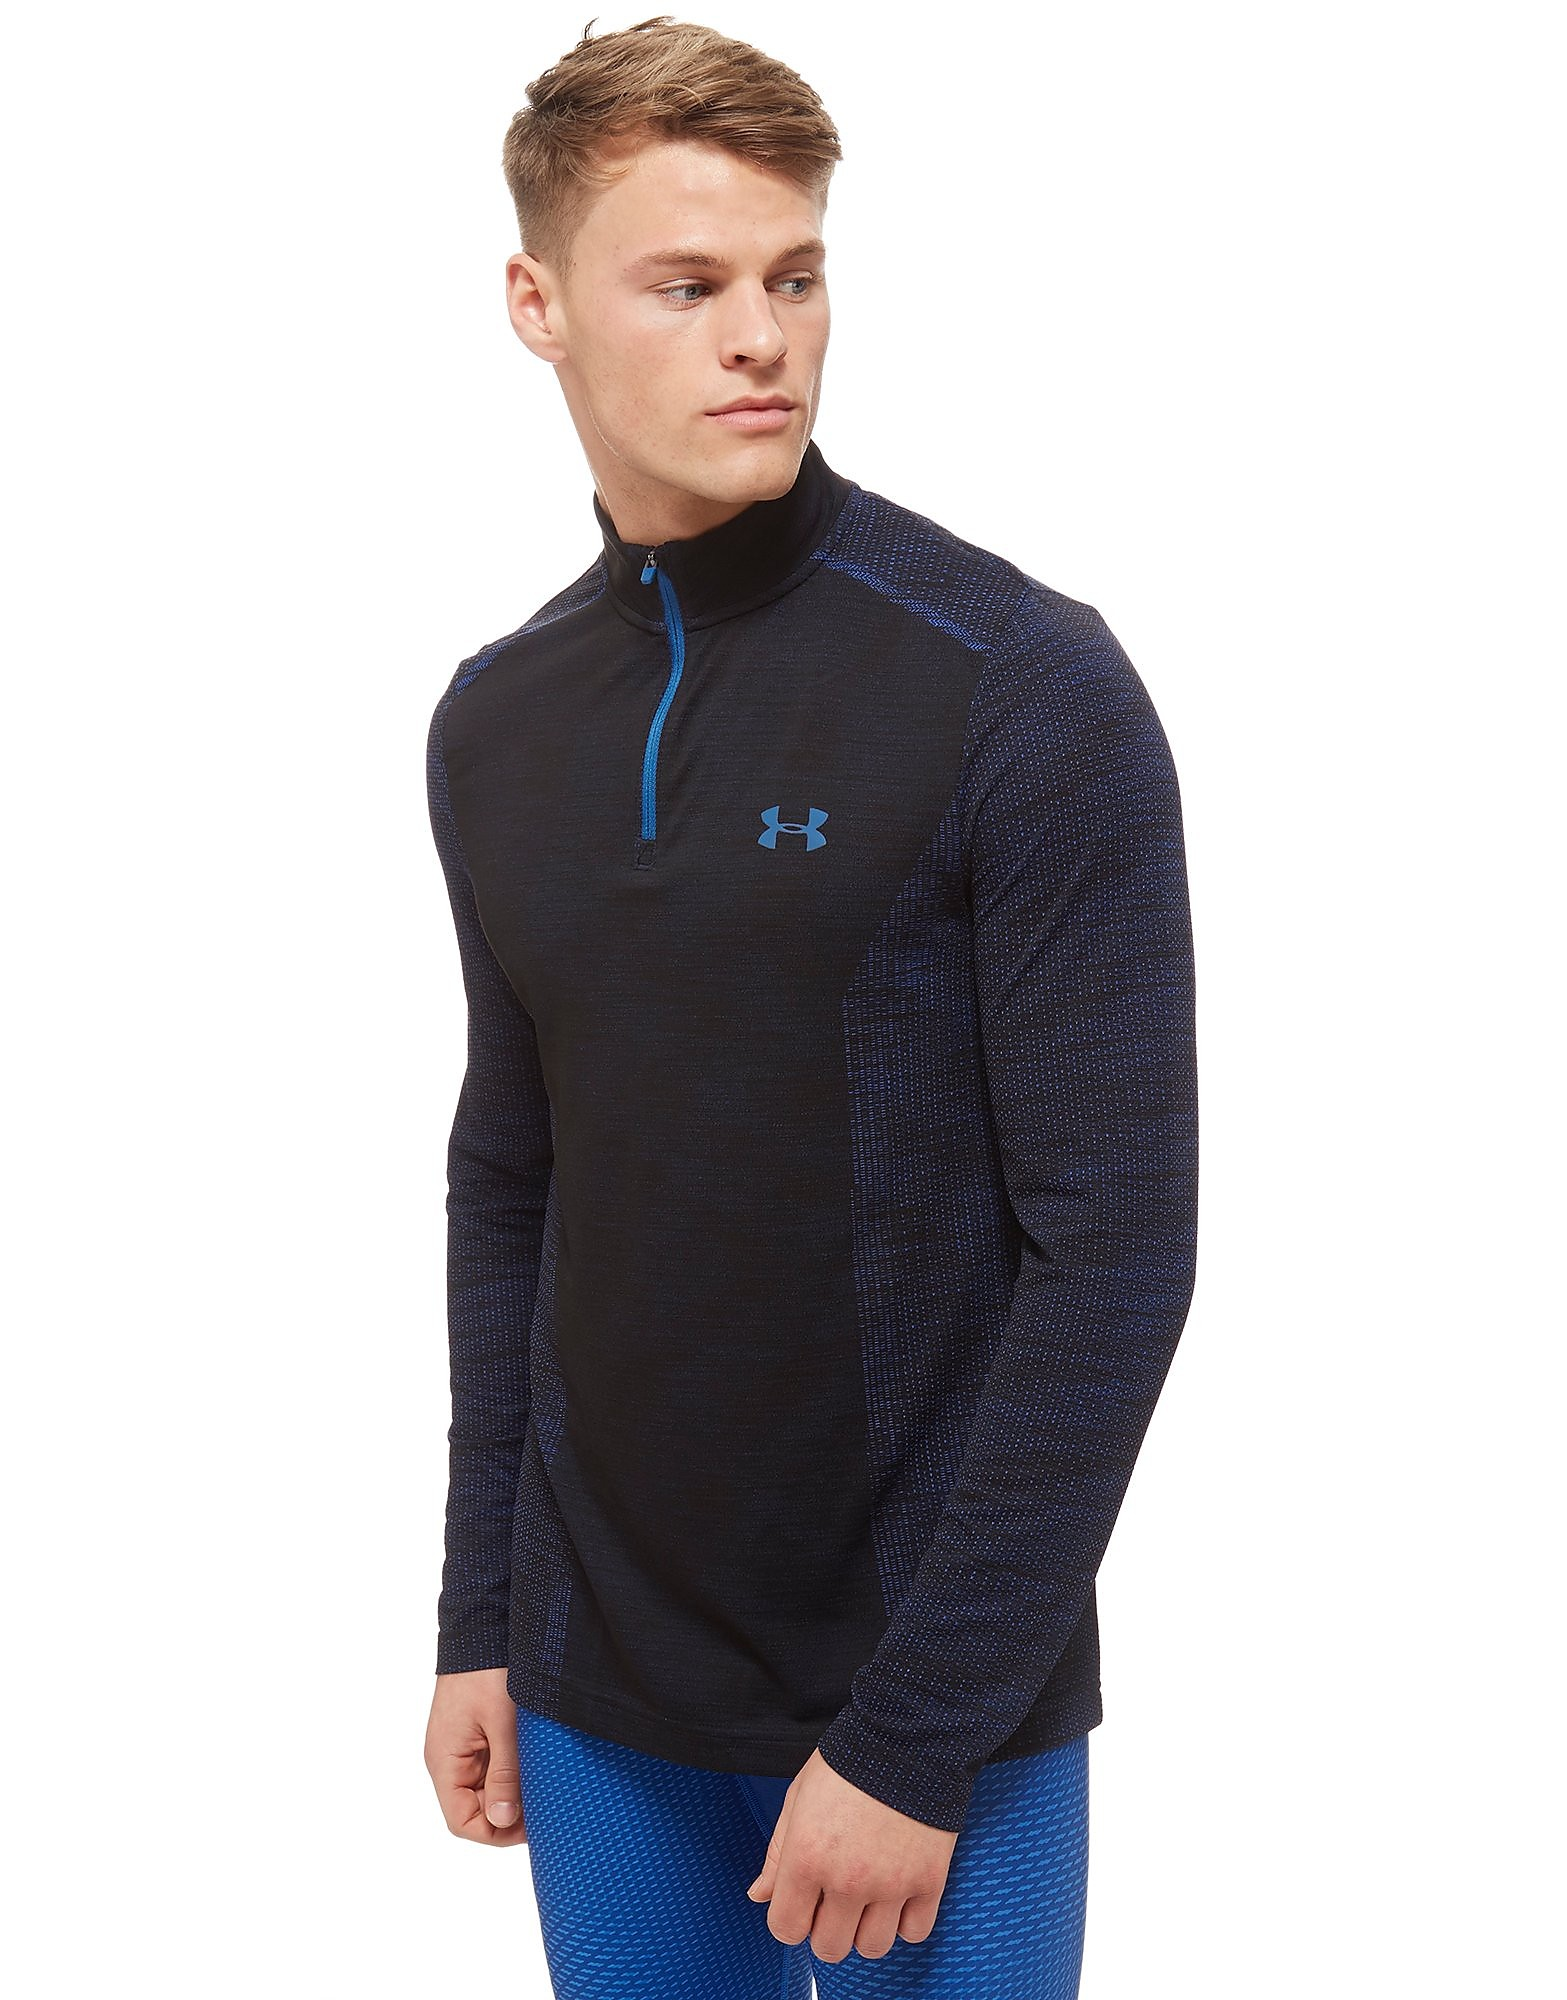 Under Armour Threadborne Seamless 1/4 Zip Top